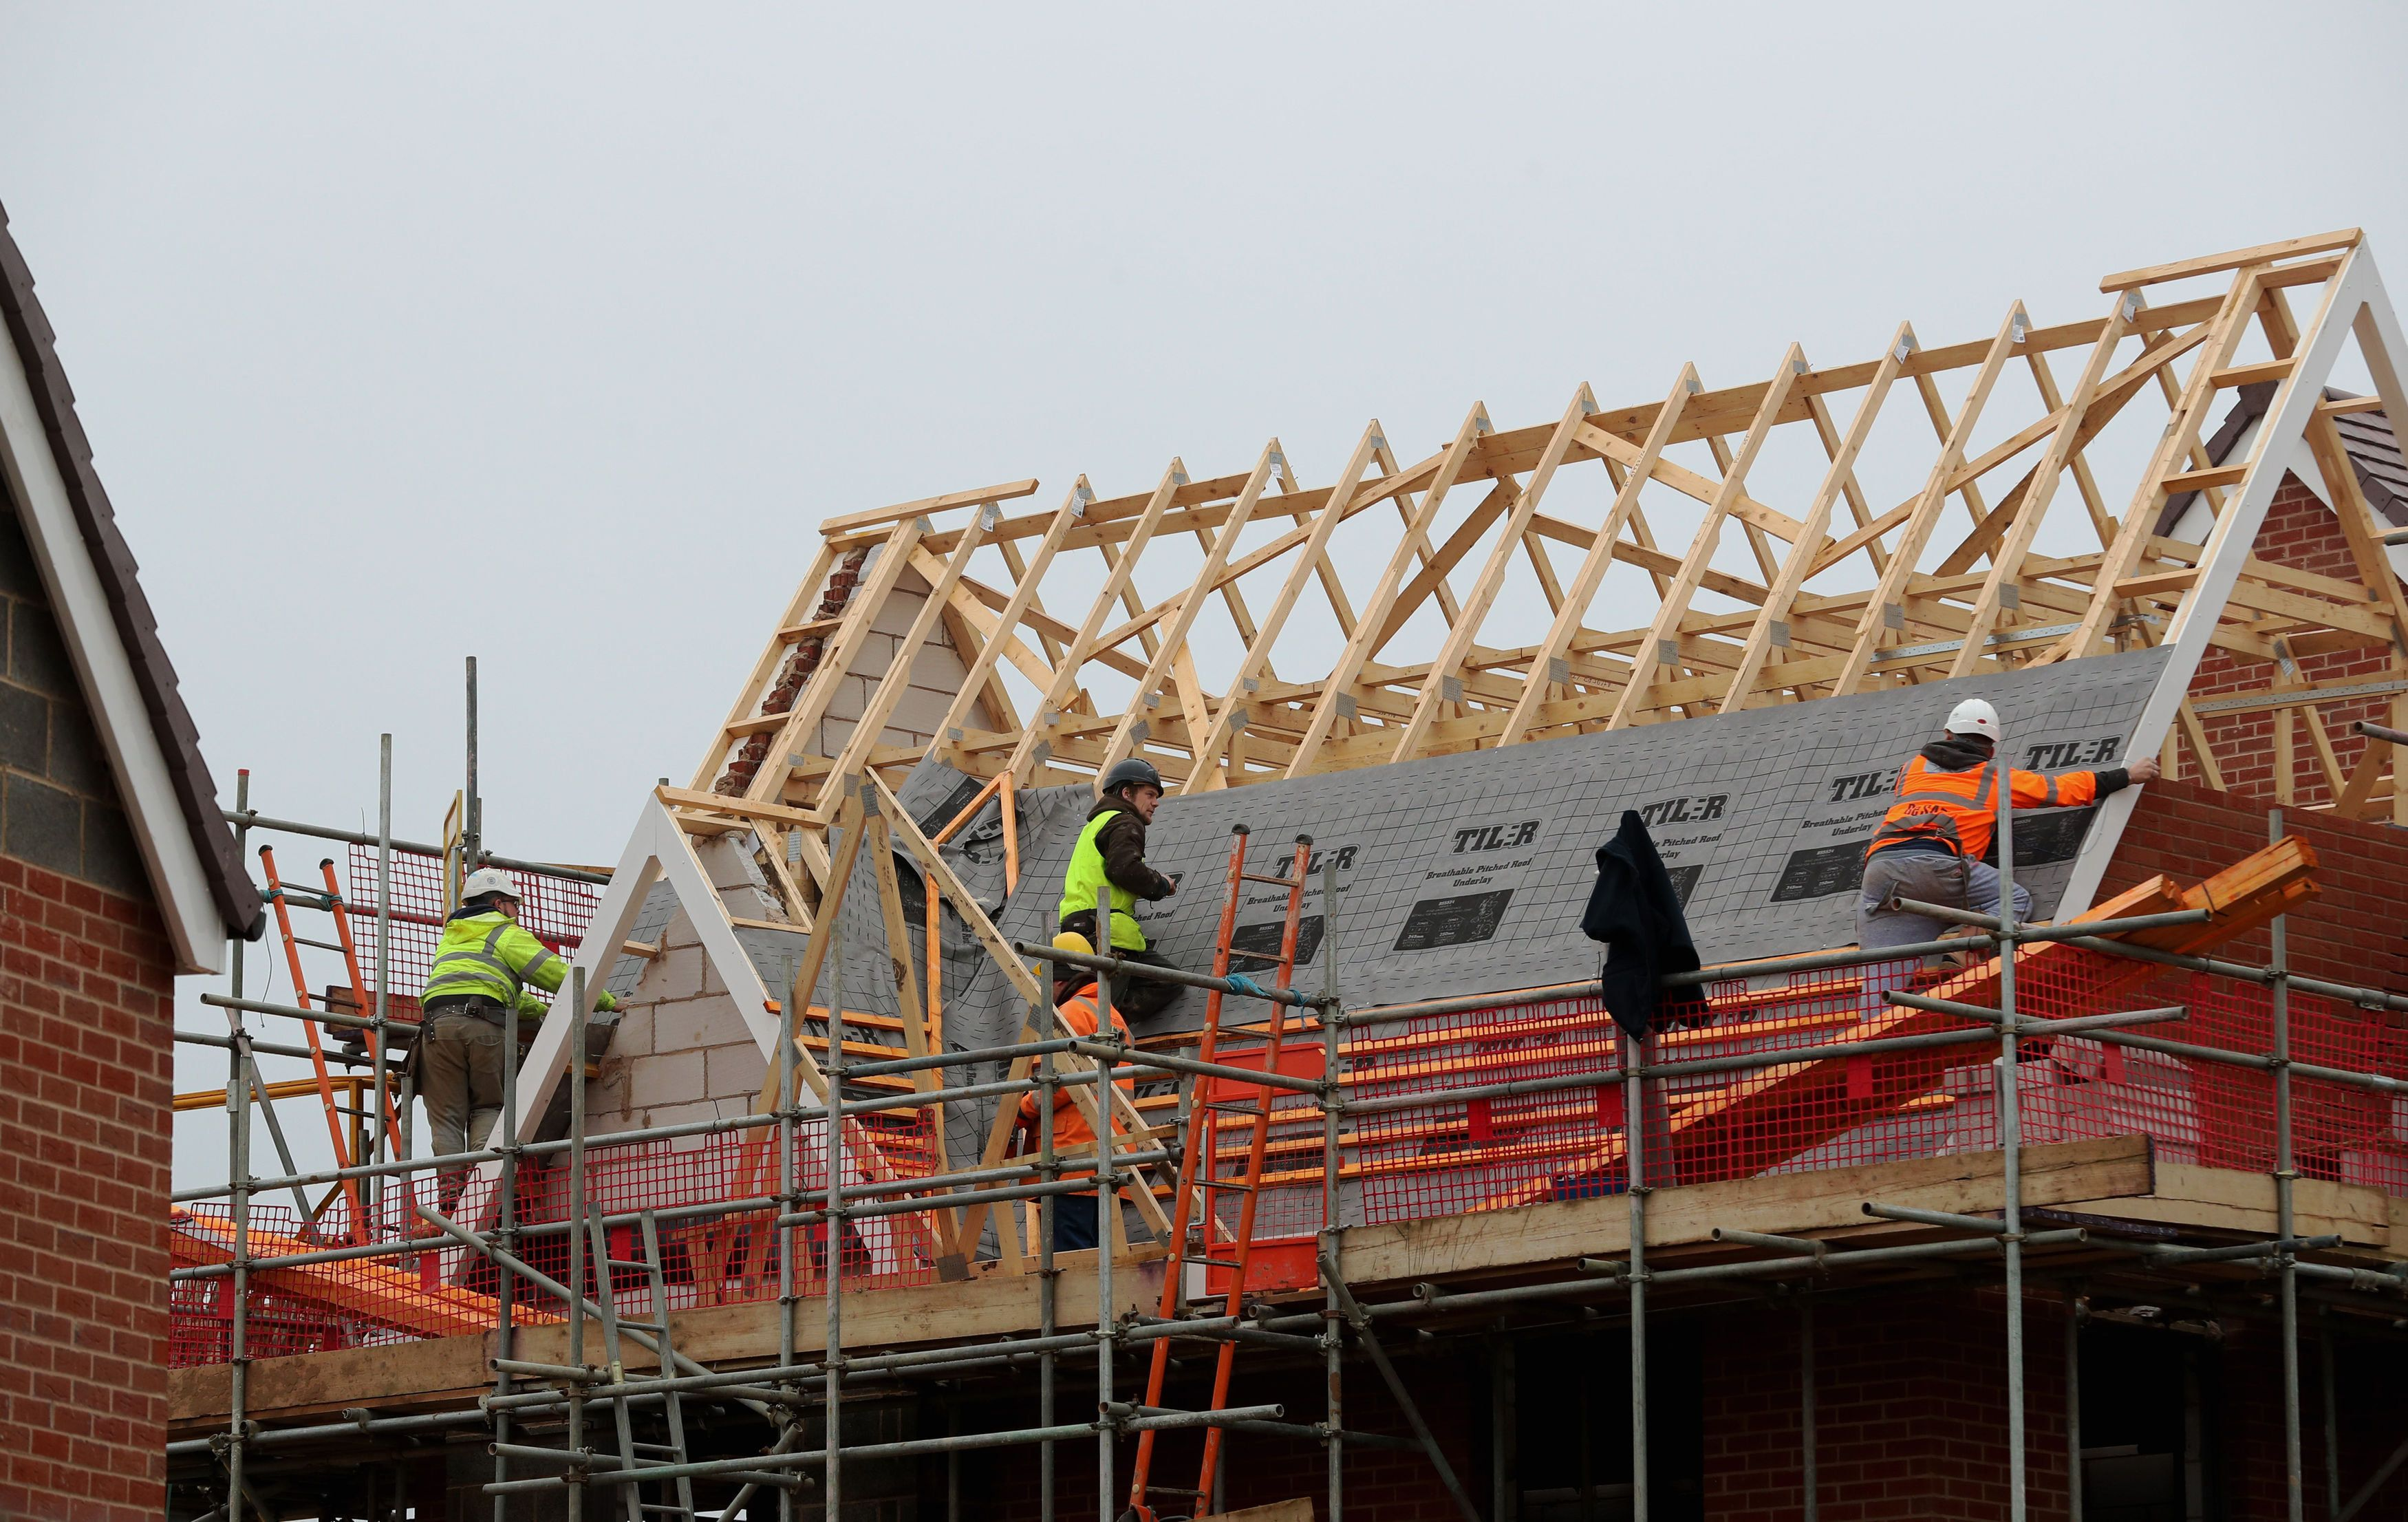 The government says its ambition is for as many people as possible to own their own home.